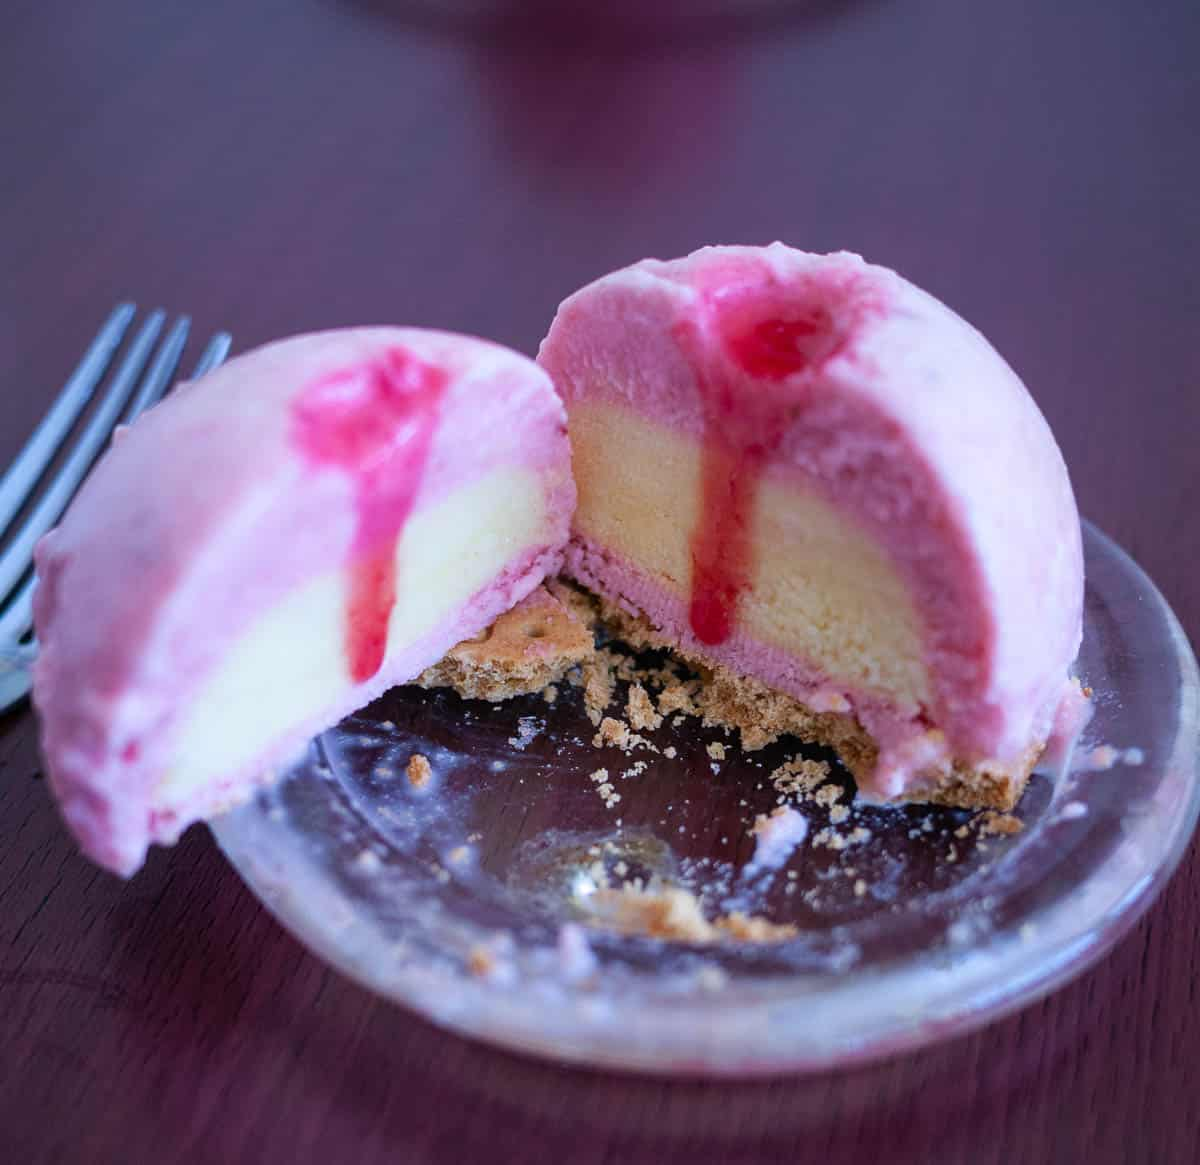 A cut strawberry entremet